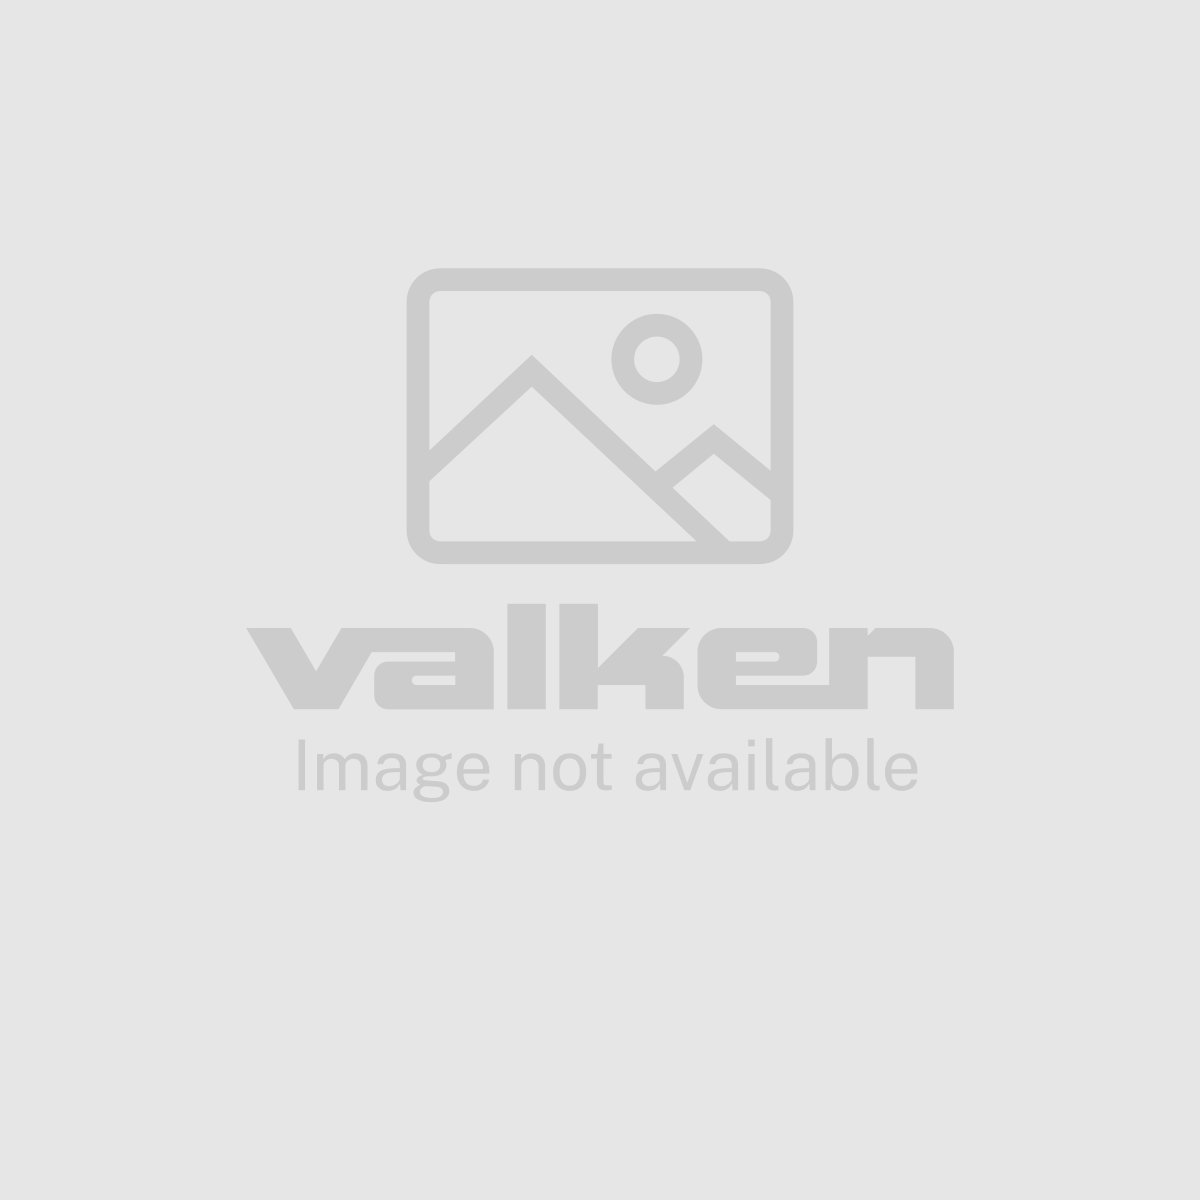 View larger image of Valken Merica Blue Tech-T Shirt